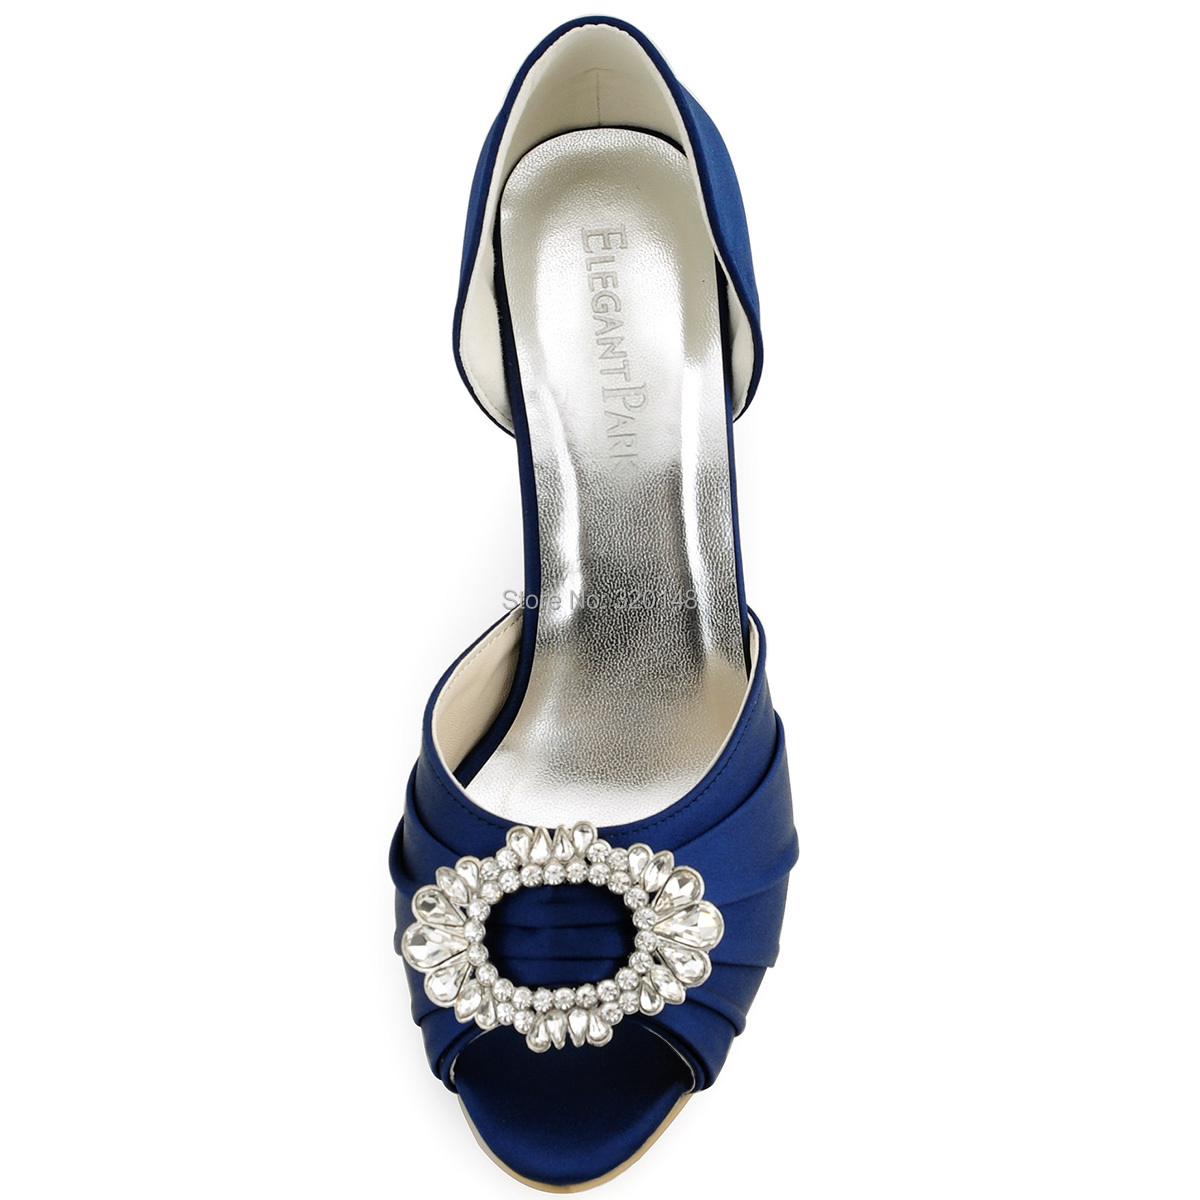 A2136 Shoes Woman High Heel Pumps Navy Blue Peep Toe Crystal Two Piece Satin Bridesmaid Ladies Evening Prom Wedding Bridal Shoes